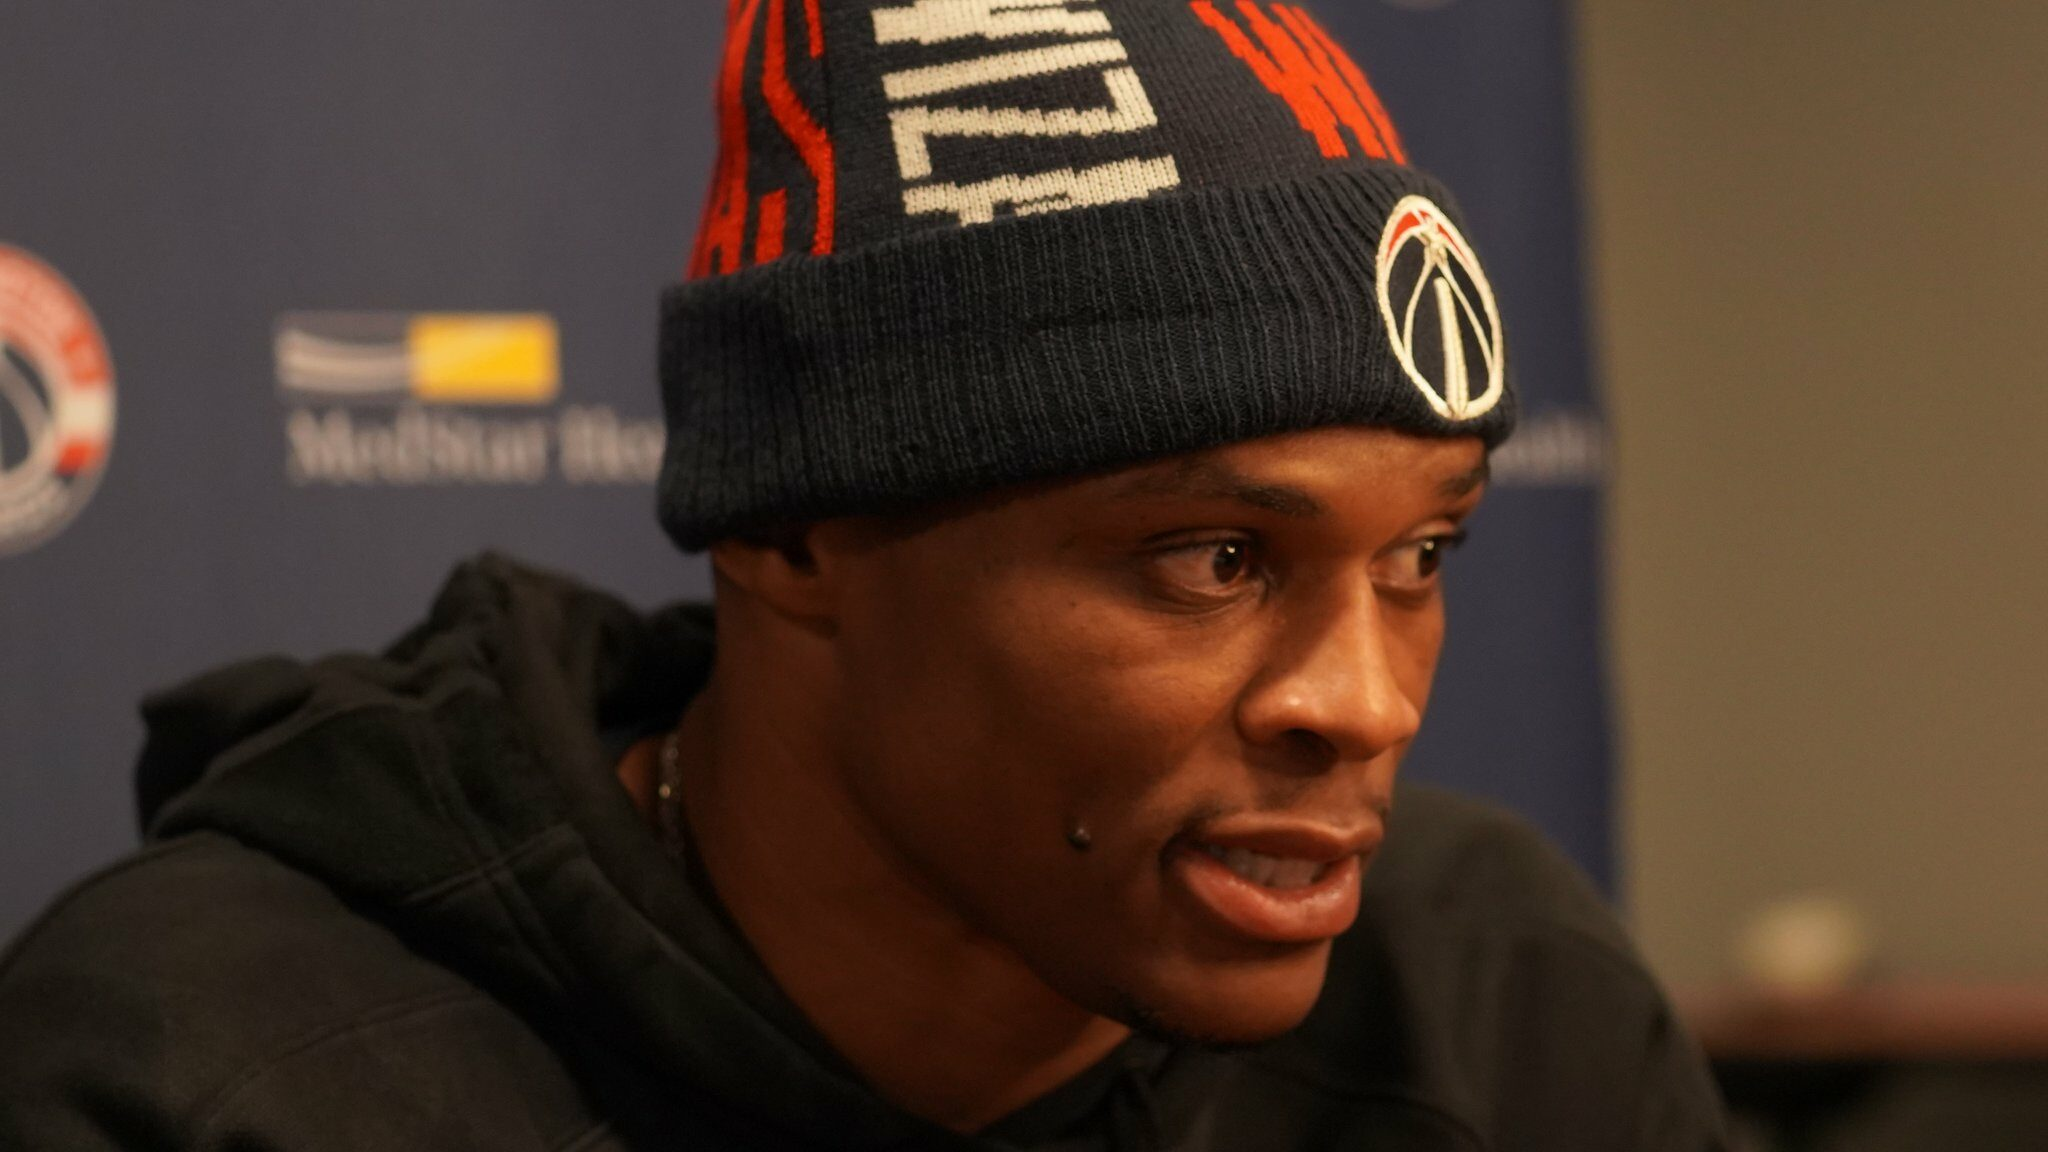 An unapologetic Russell Westbrook is ready for his new challenge with Wizards